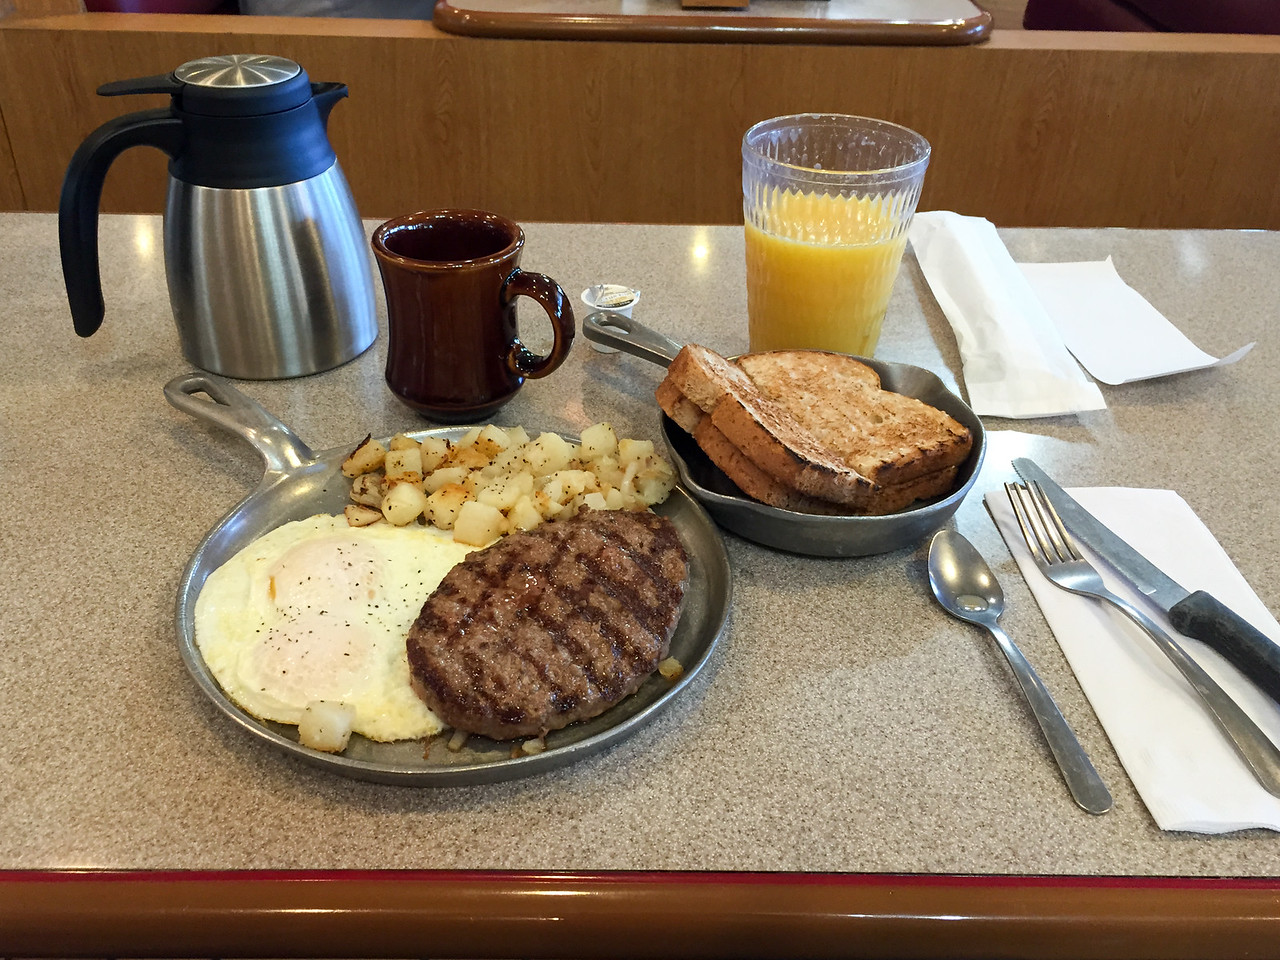 A hearty breakfast in Las Vegas.  I did not eat again until 10 pm! (Picture taken with iPhone)